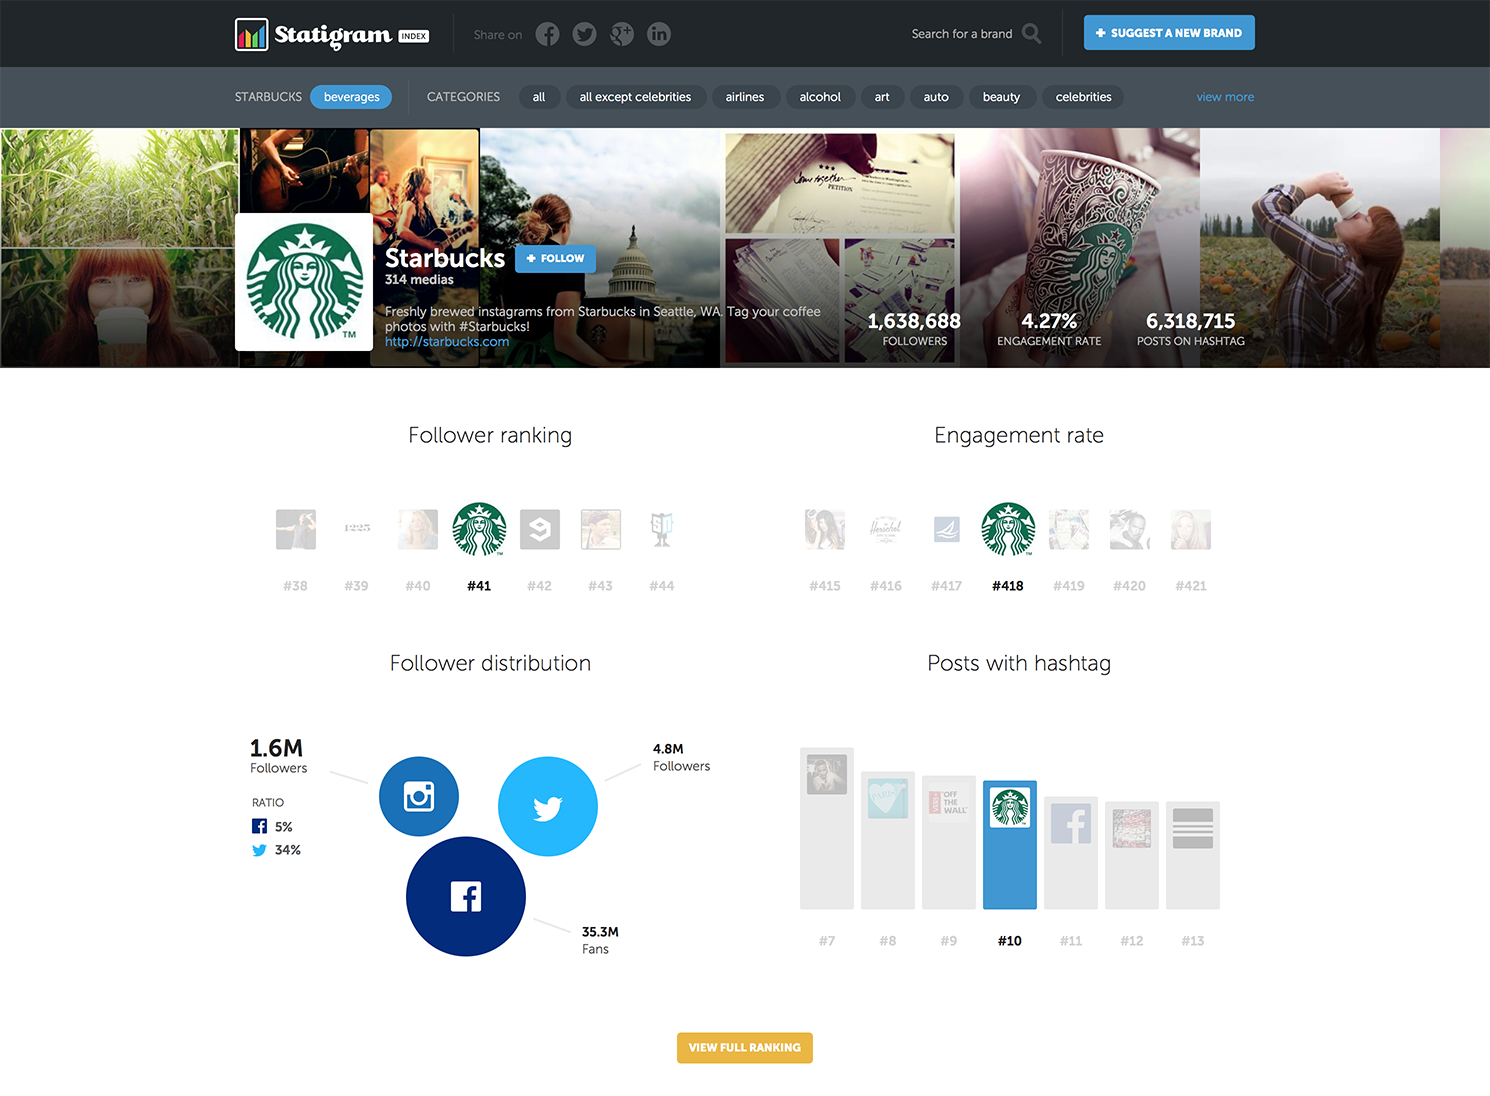 Statigram Index Starbucks Statigram Index is a phenomenal Instagram leaderboard and benchmarking tool for brands